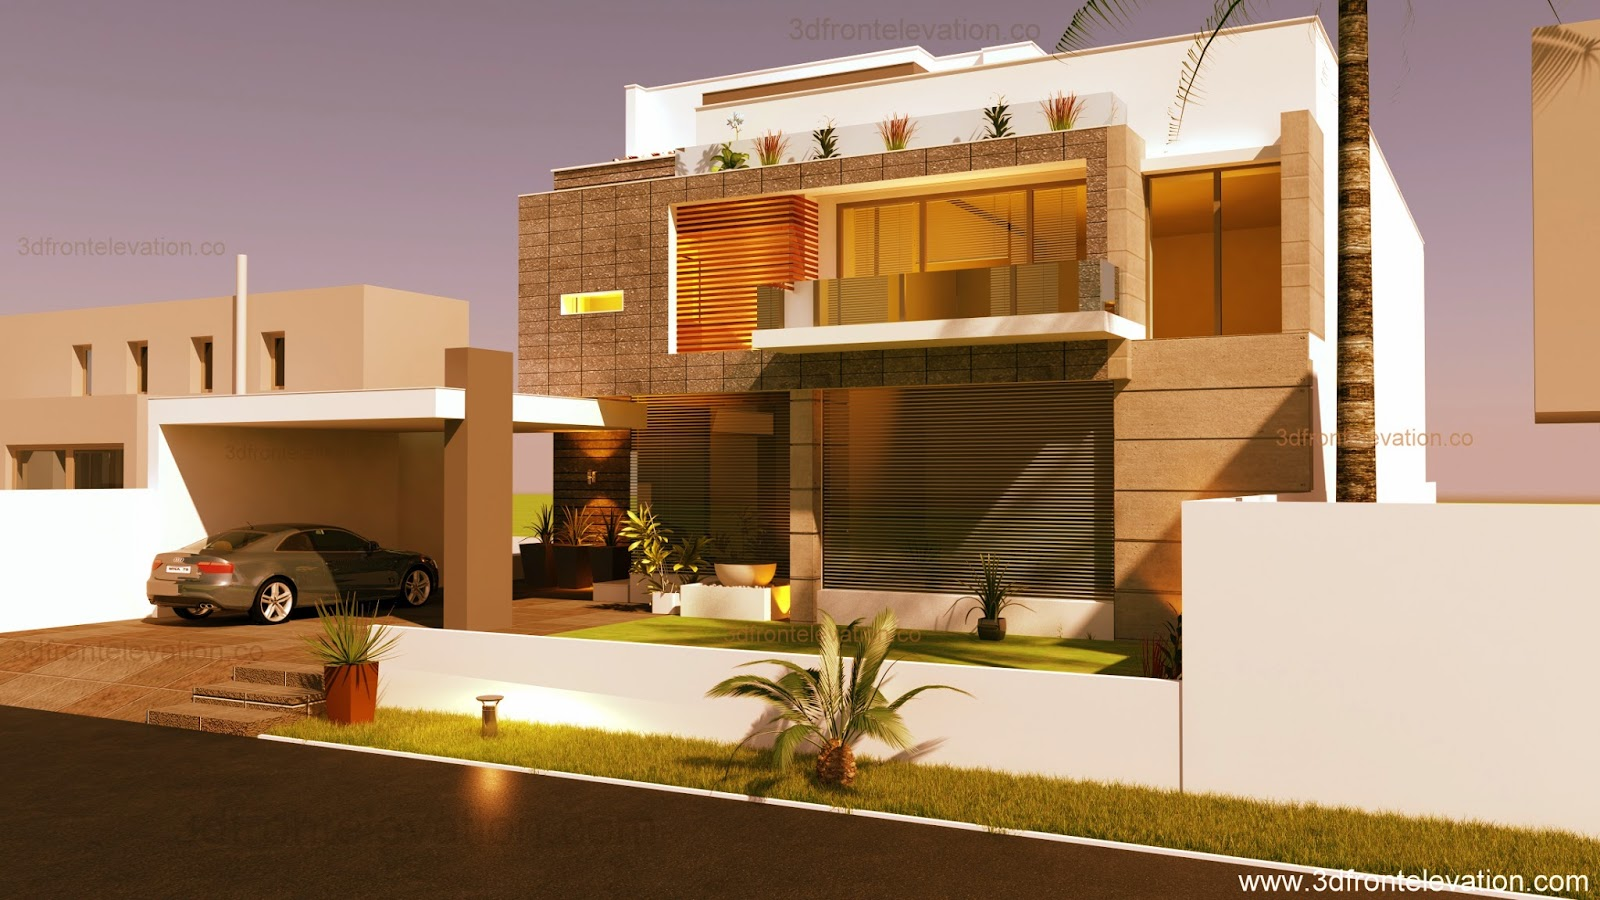 3D Front Elevation.com: Beautiful Modern Contemporary